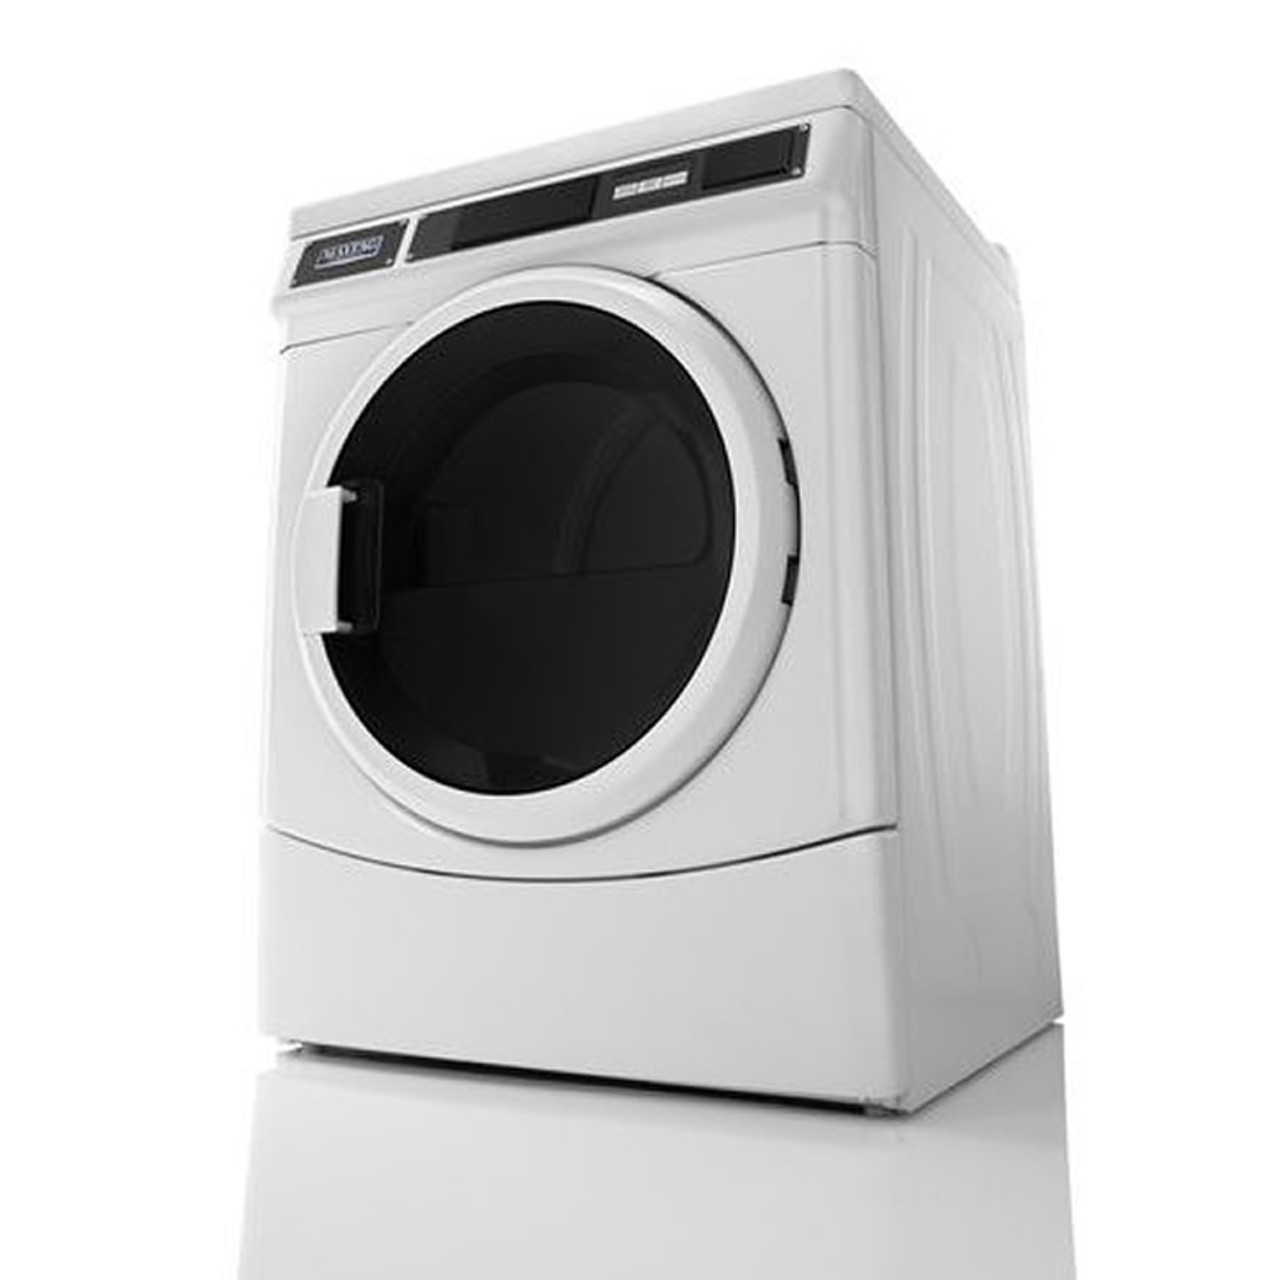 Maytag MDE28PR - Maytag Commercial Super-Capacity Electric Dryer Microprocessor Controls - Card Reader Ready